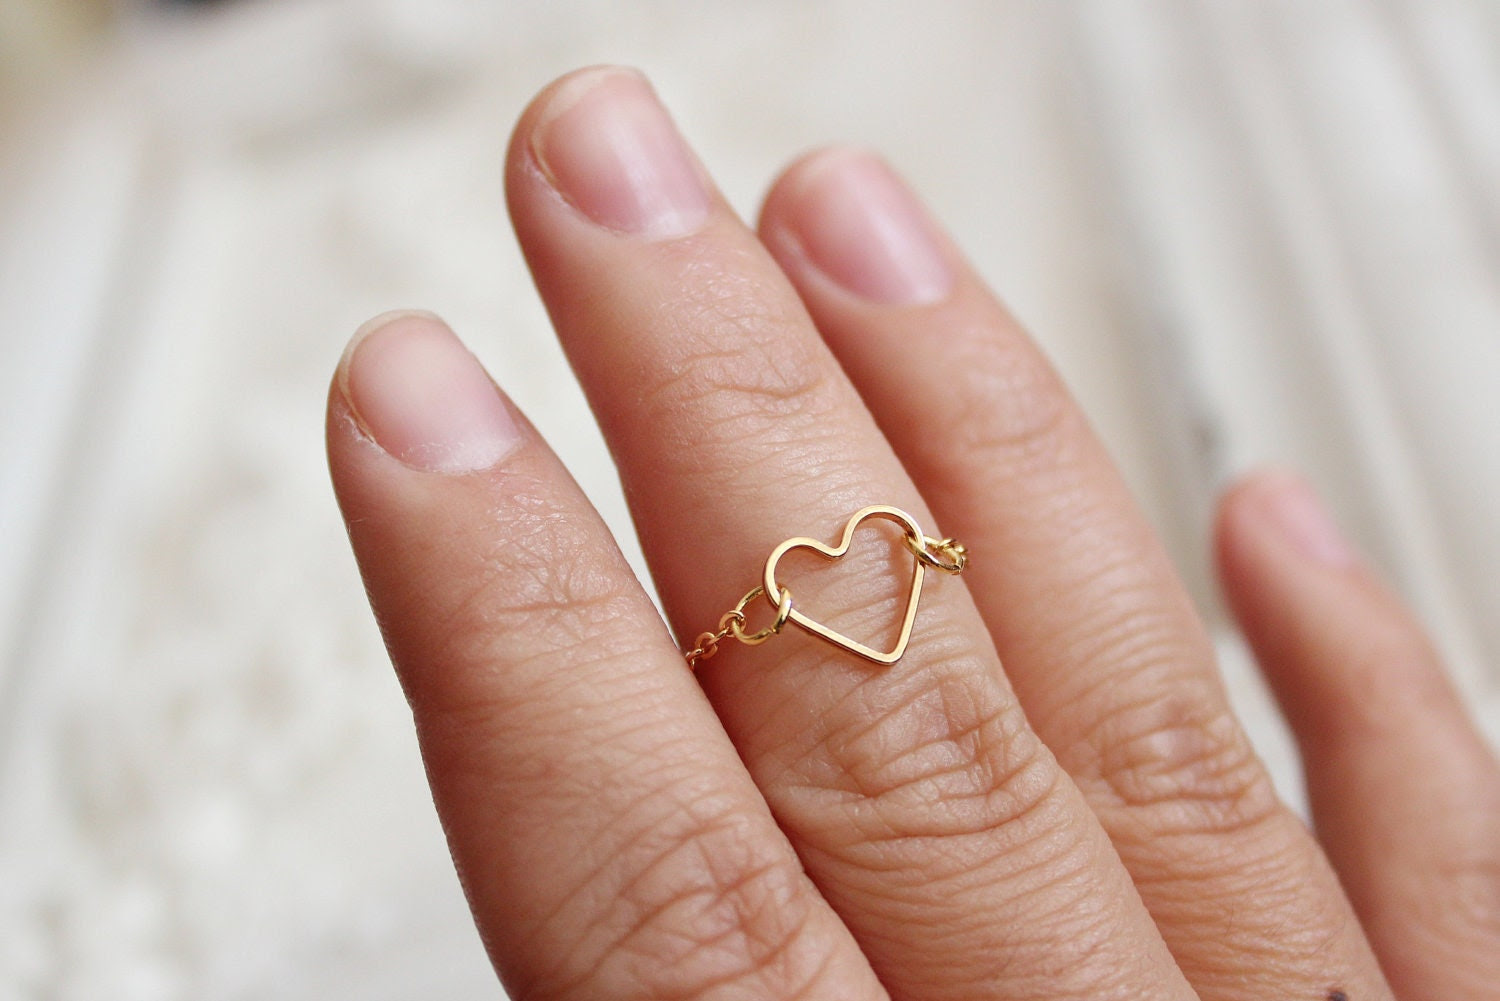 dainty gold heart ring  - gold heart above knuckle ring-gold heart dainty ring-bridesmaid gift